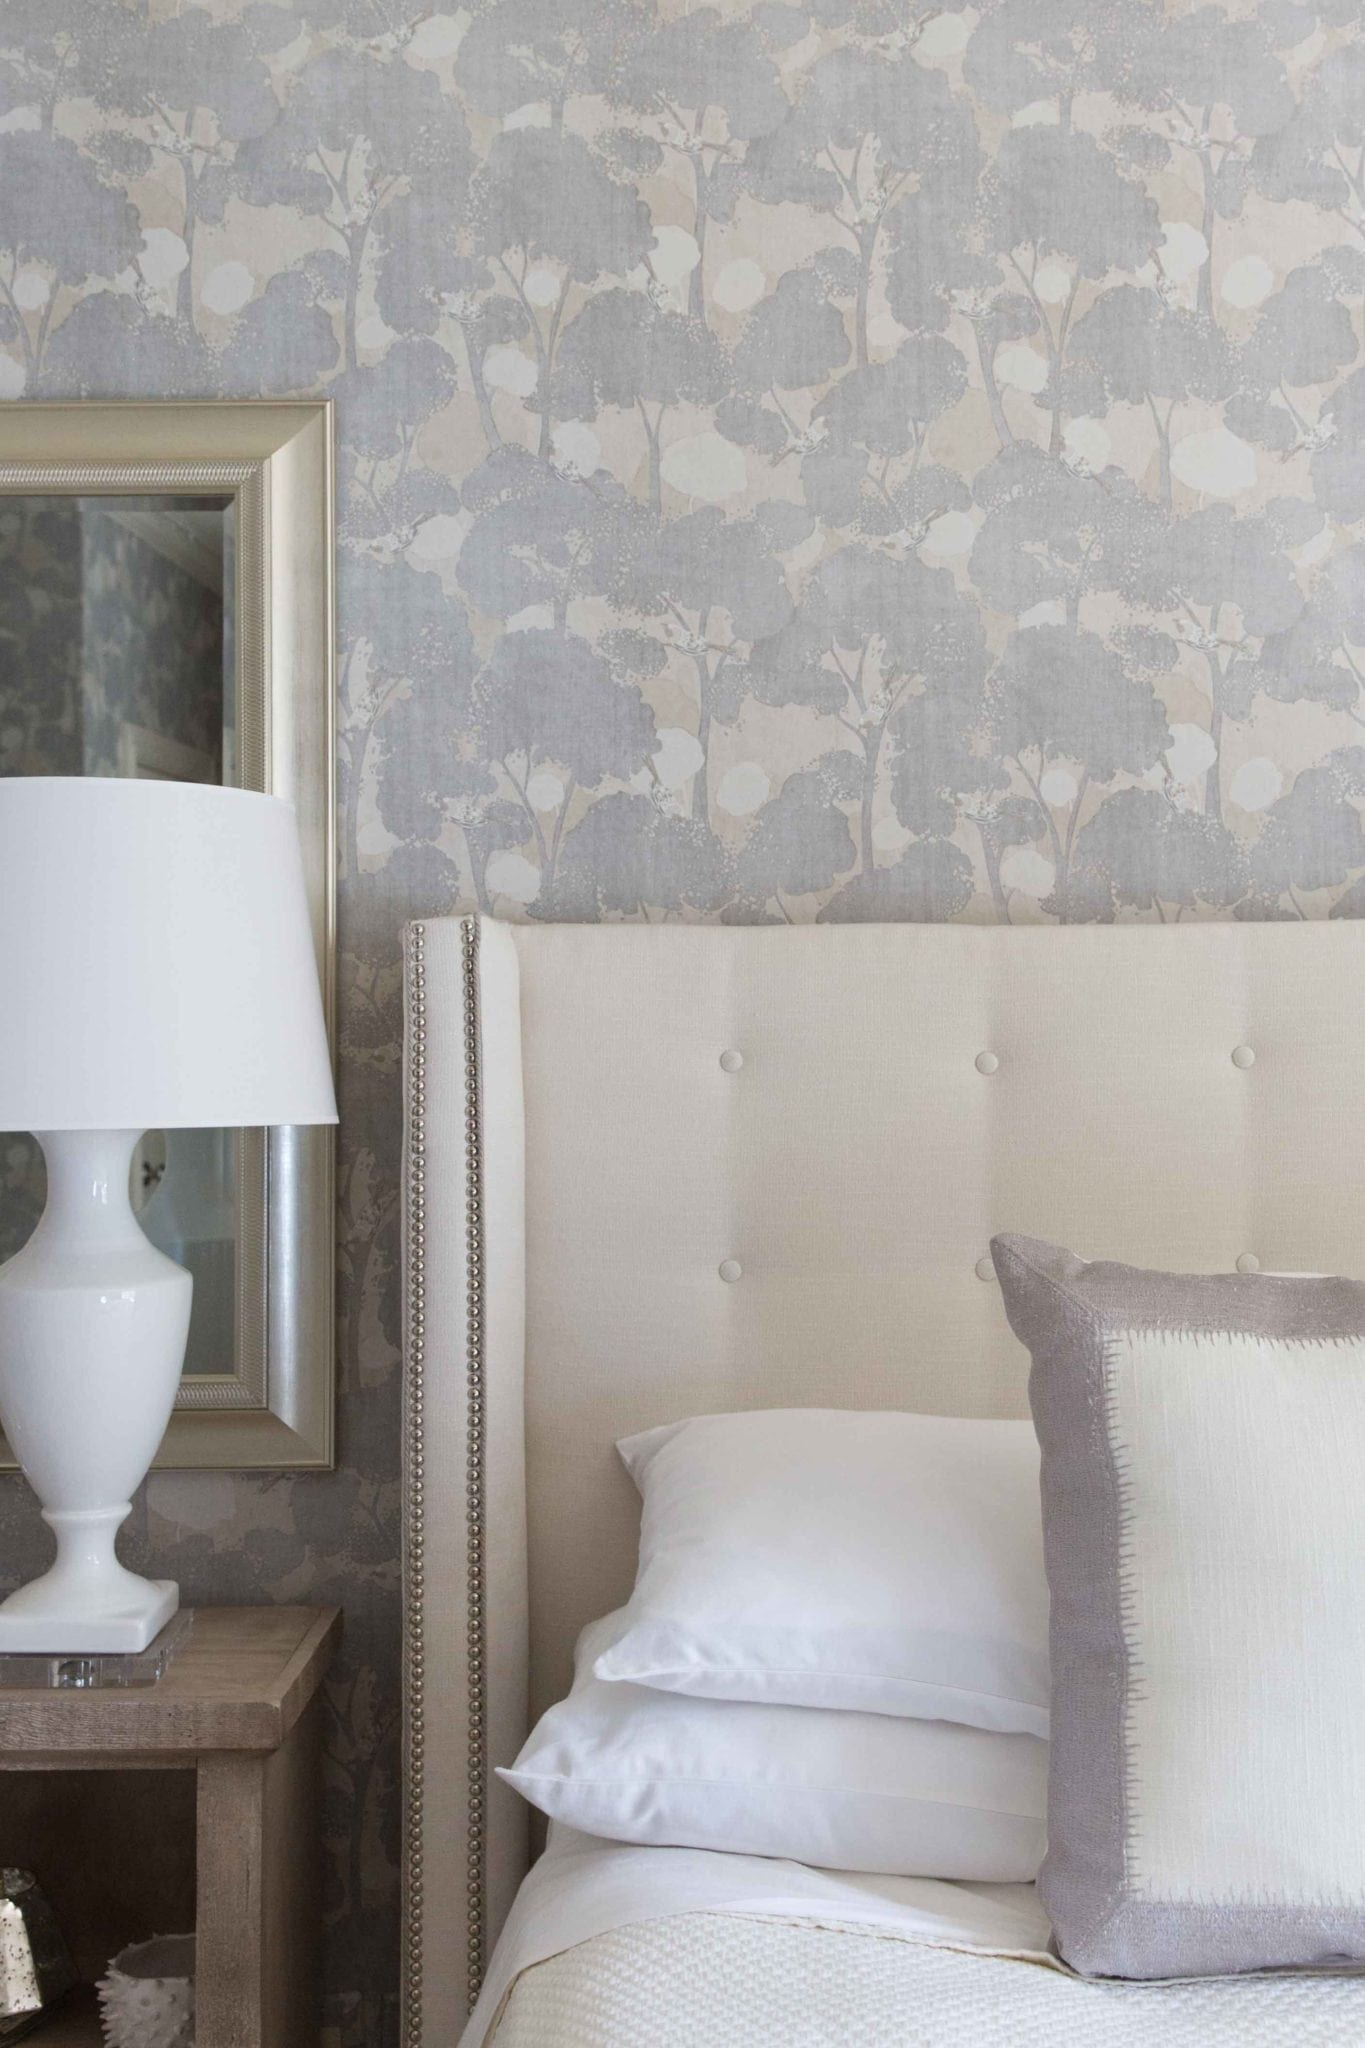 Decorating with wallpaper. How to use wallpaper and tips on how to update bedroom decor.